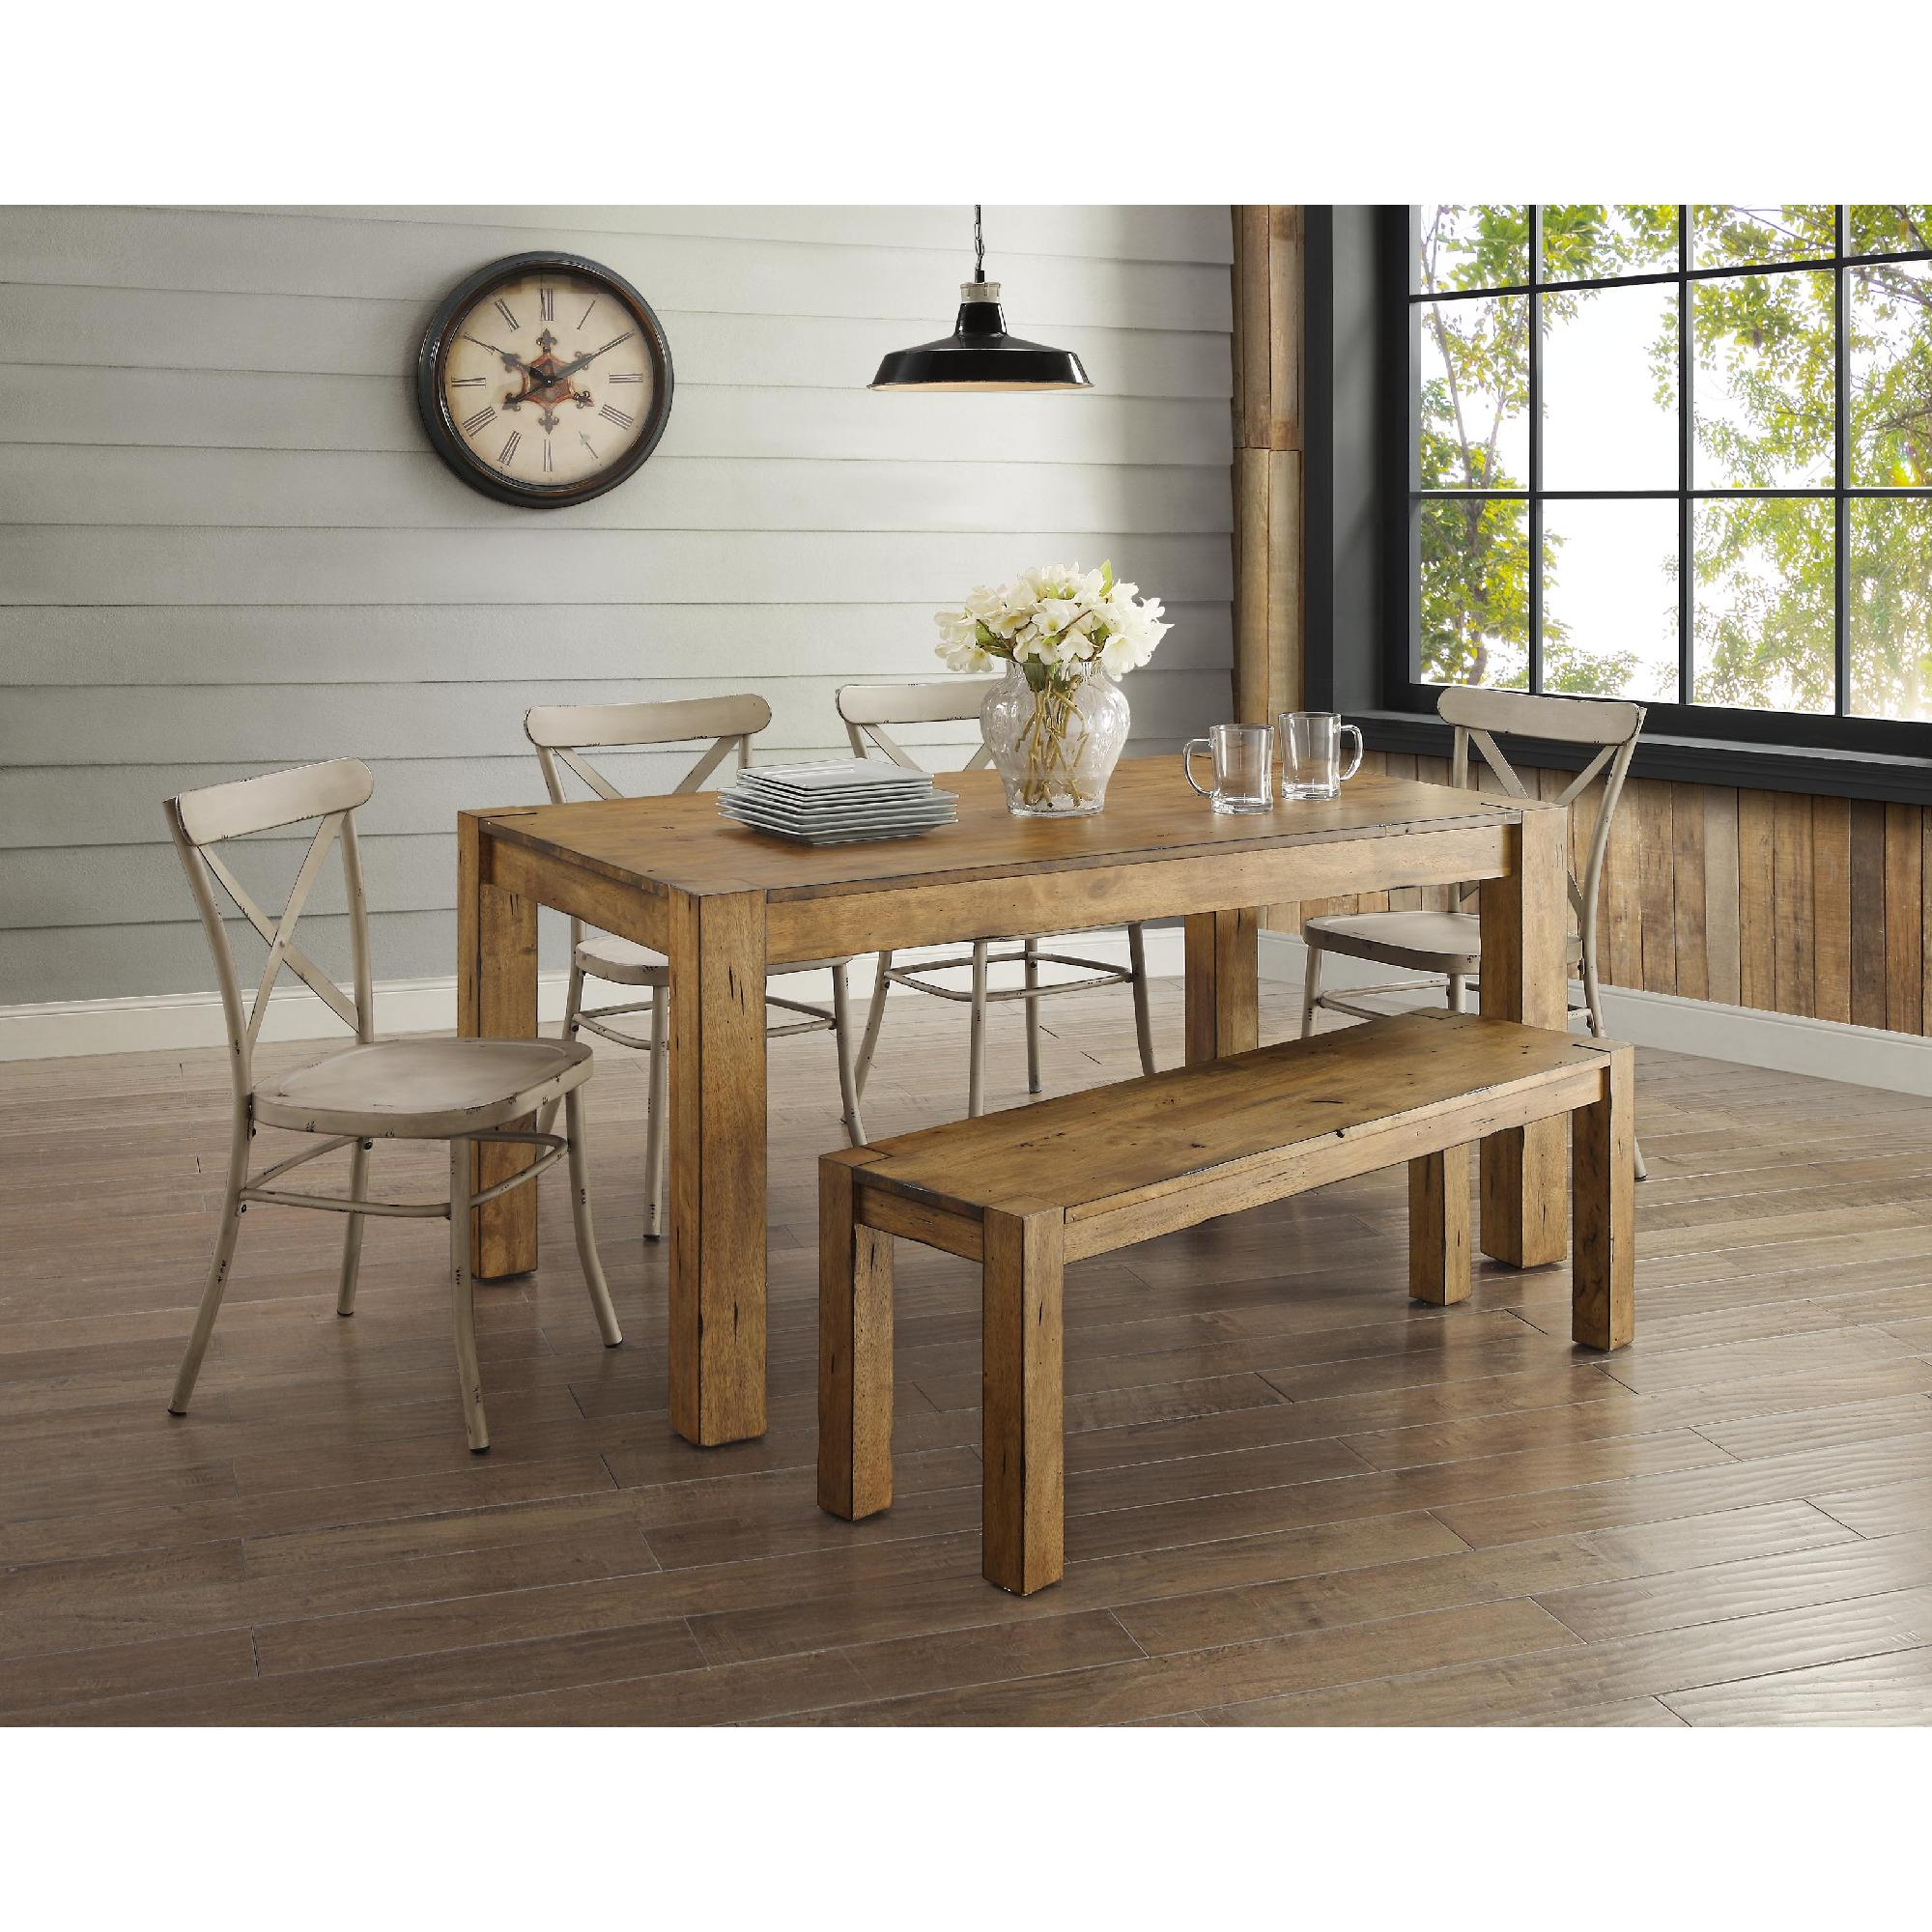 Better Homes and Gardens Mix and Match Rustic Dining Sets - Walmart.com